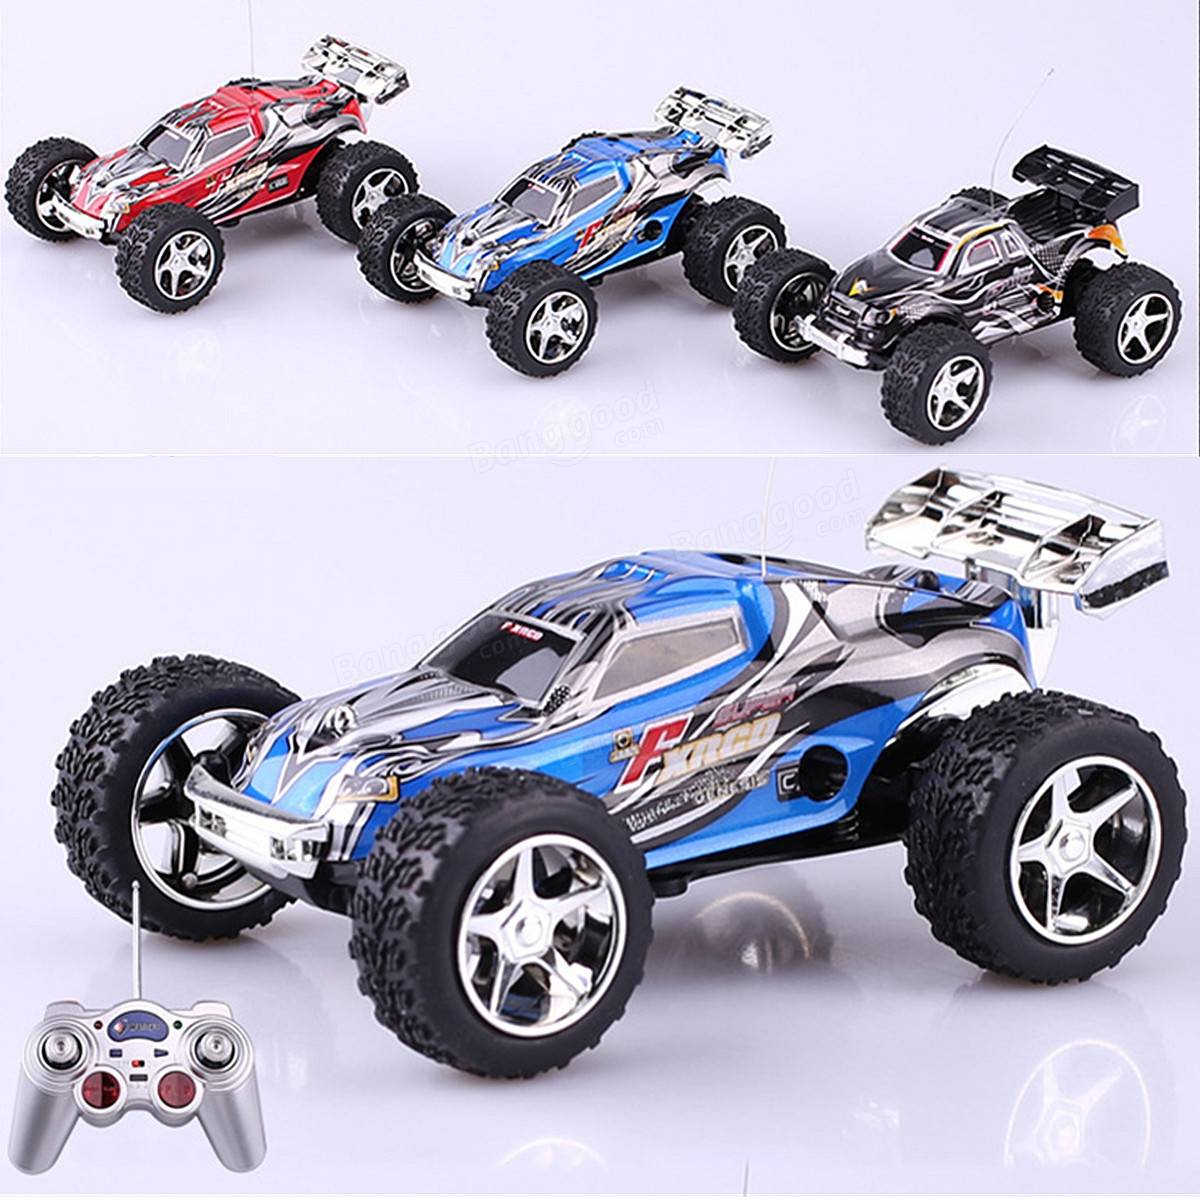 Mini 1:32 High Sd Radio Remote Control Car RC Truck Buggy ... Remote Control Vehicles For Sale on laptop stands for vehicles, light bars for vehicles, strobe lights for vehicles, portable printers for vehicles,